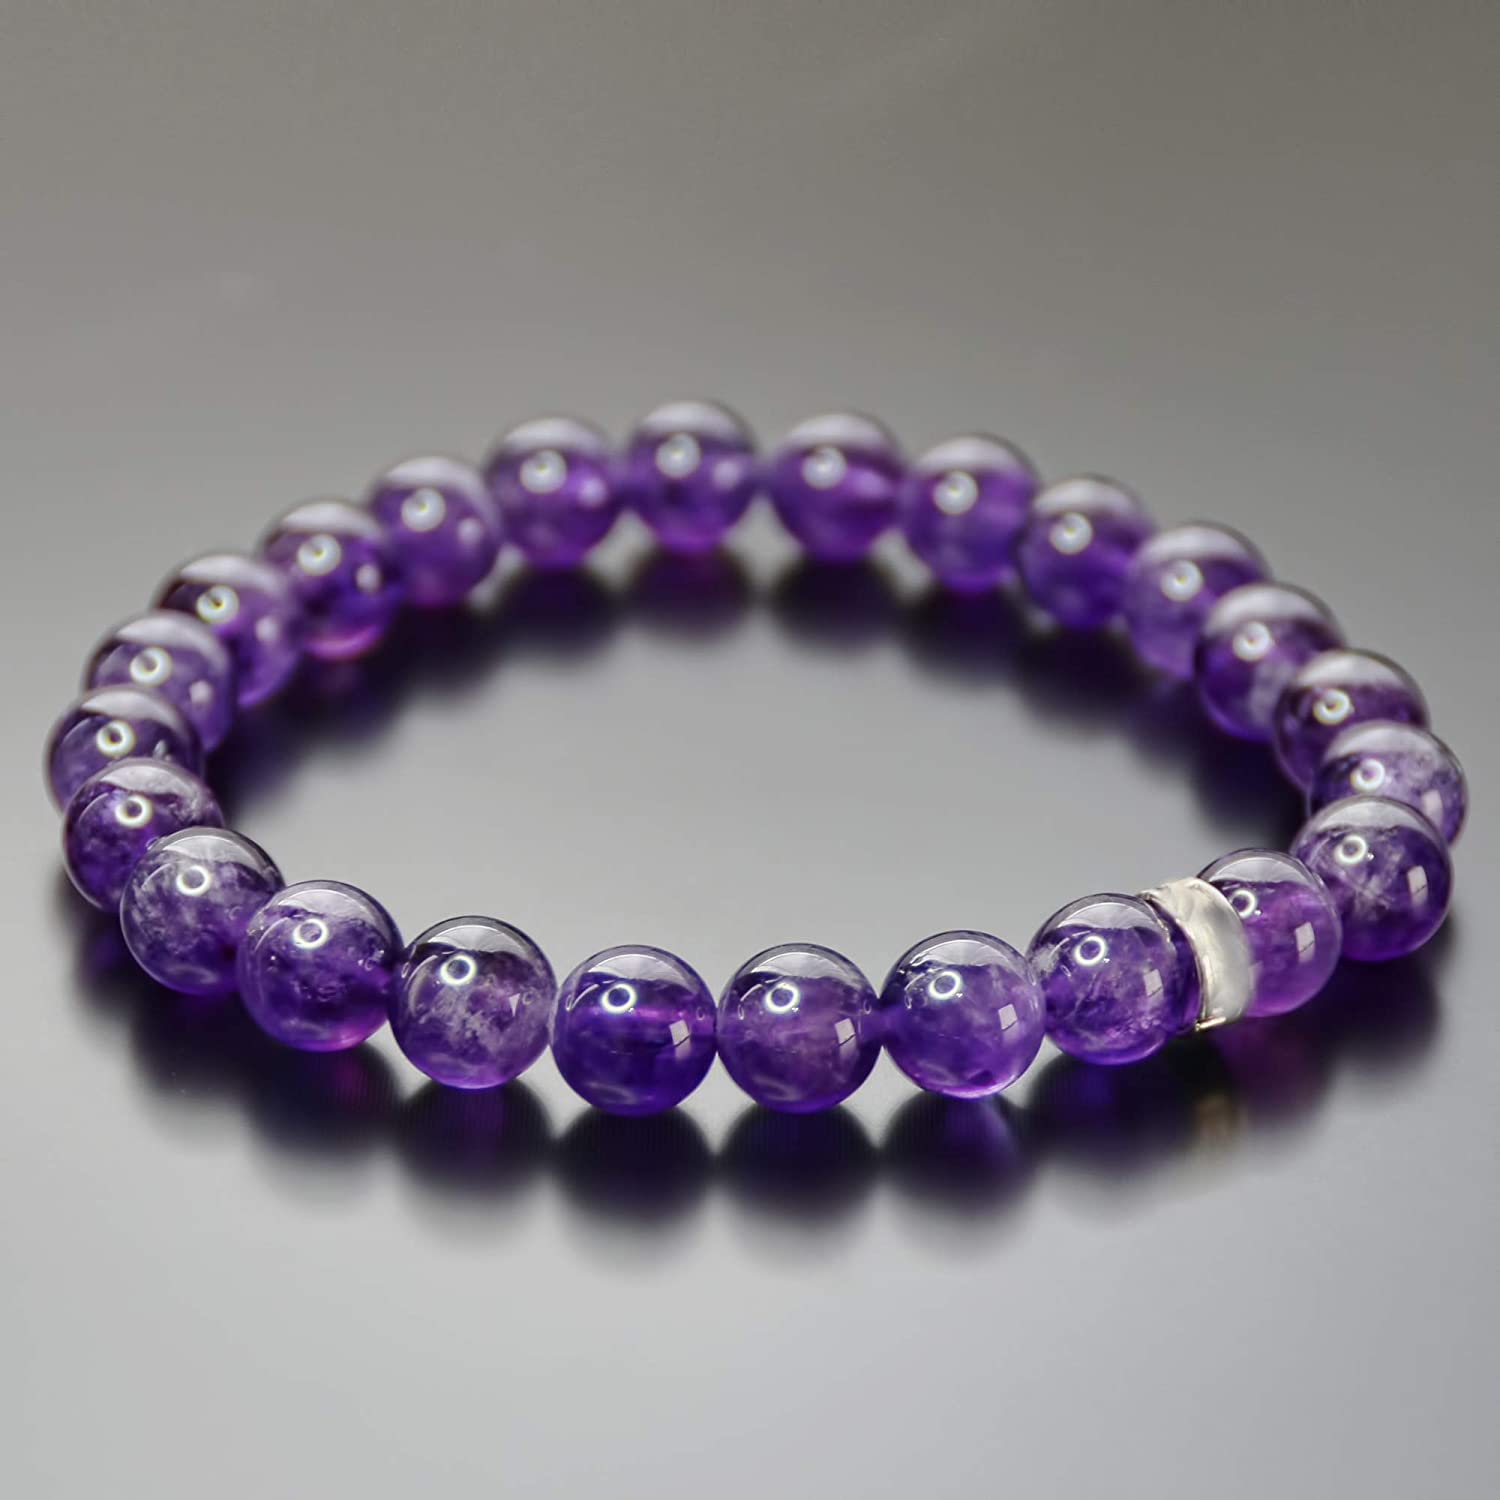 Beaded Bracelet Wife Gift Yoga Jewelry Gift for Girlfriend Amethyst Jewelry Birthday Gift for Women Sister Gift Amethyst Bracelet